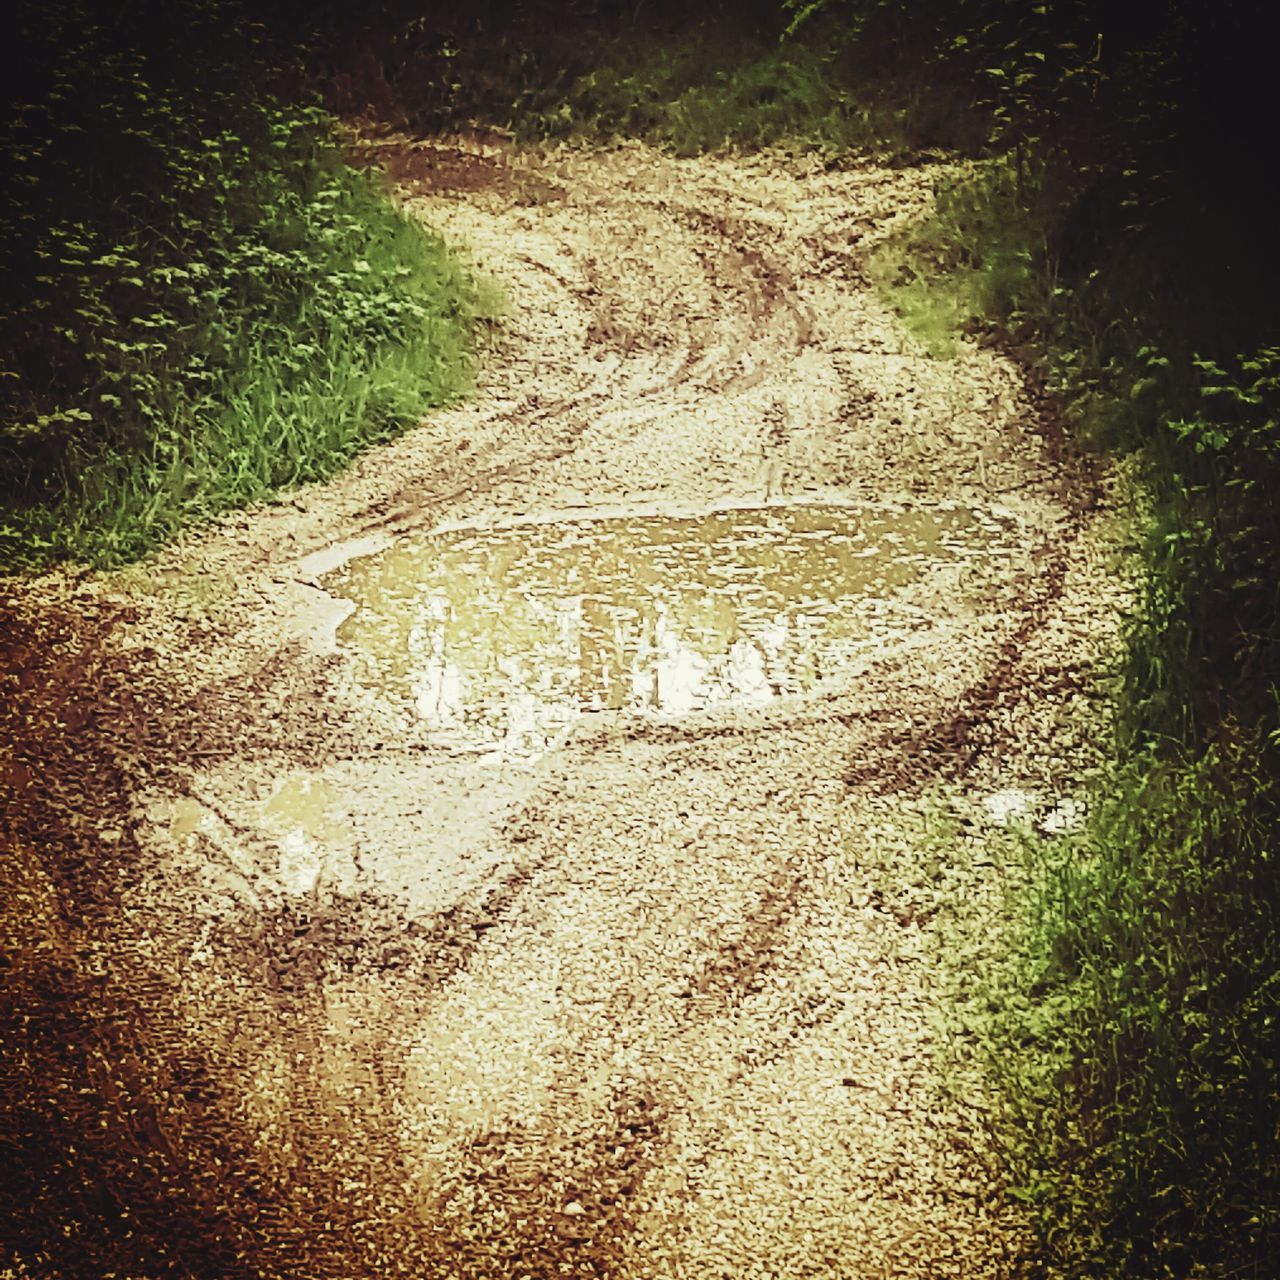 road, the way forward, day, outdoors, no people, tire track, plant, nature, grass, tree